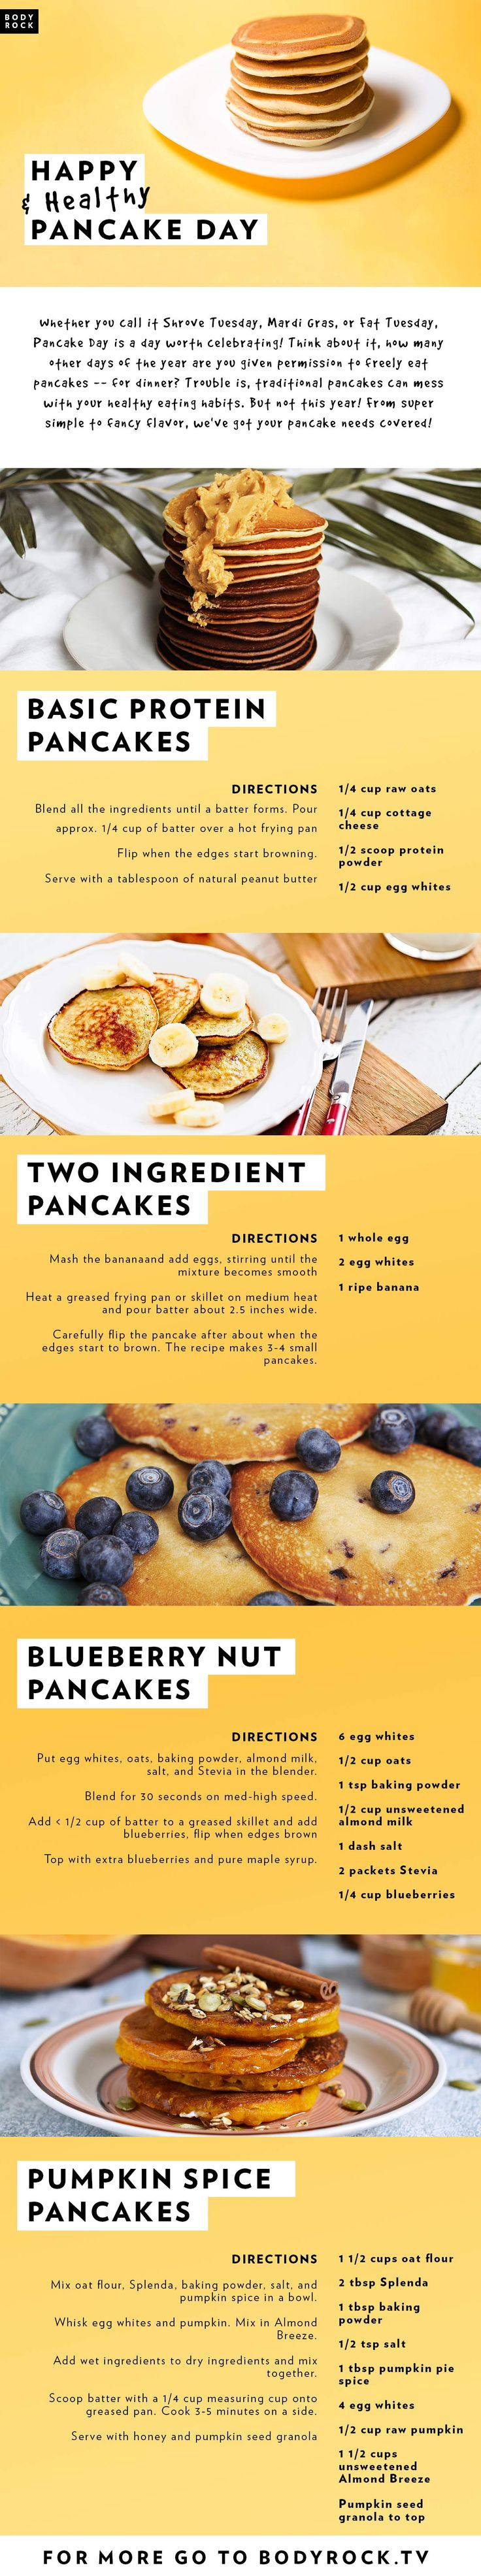 Go on, you deserve it! Have yourself a happier, healthier, guilt-free Pancake Day!